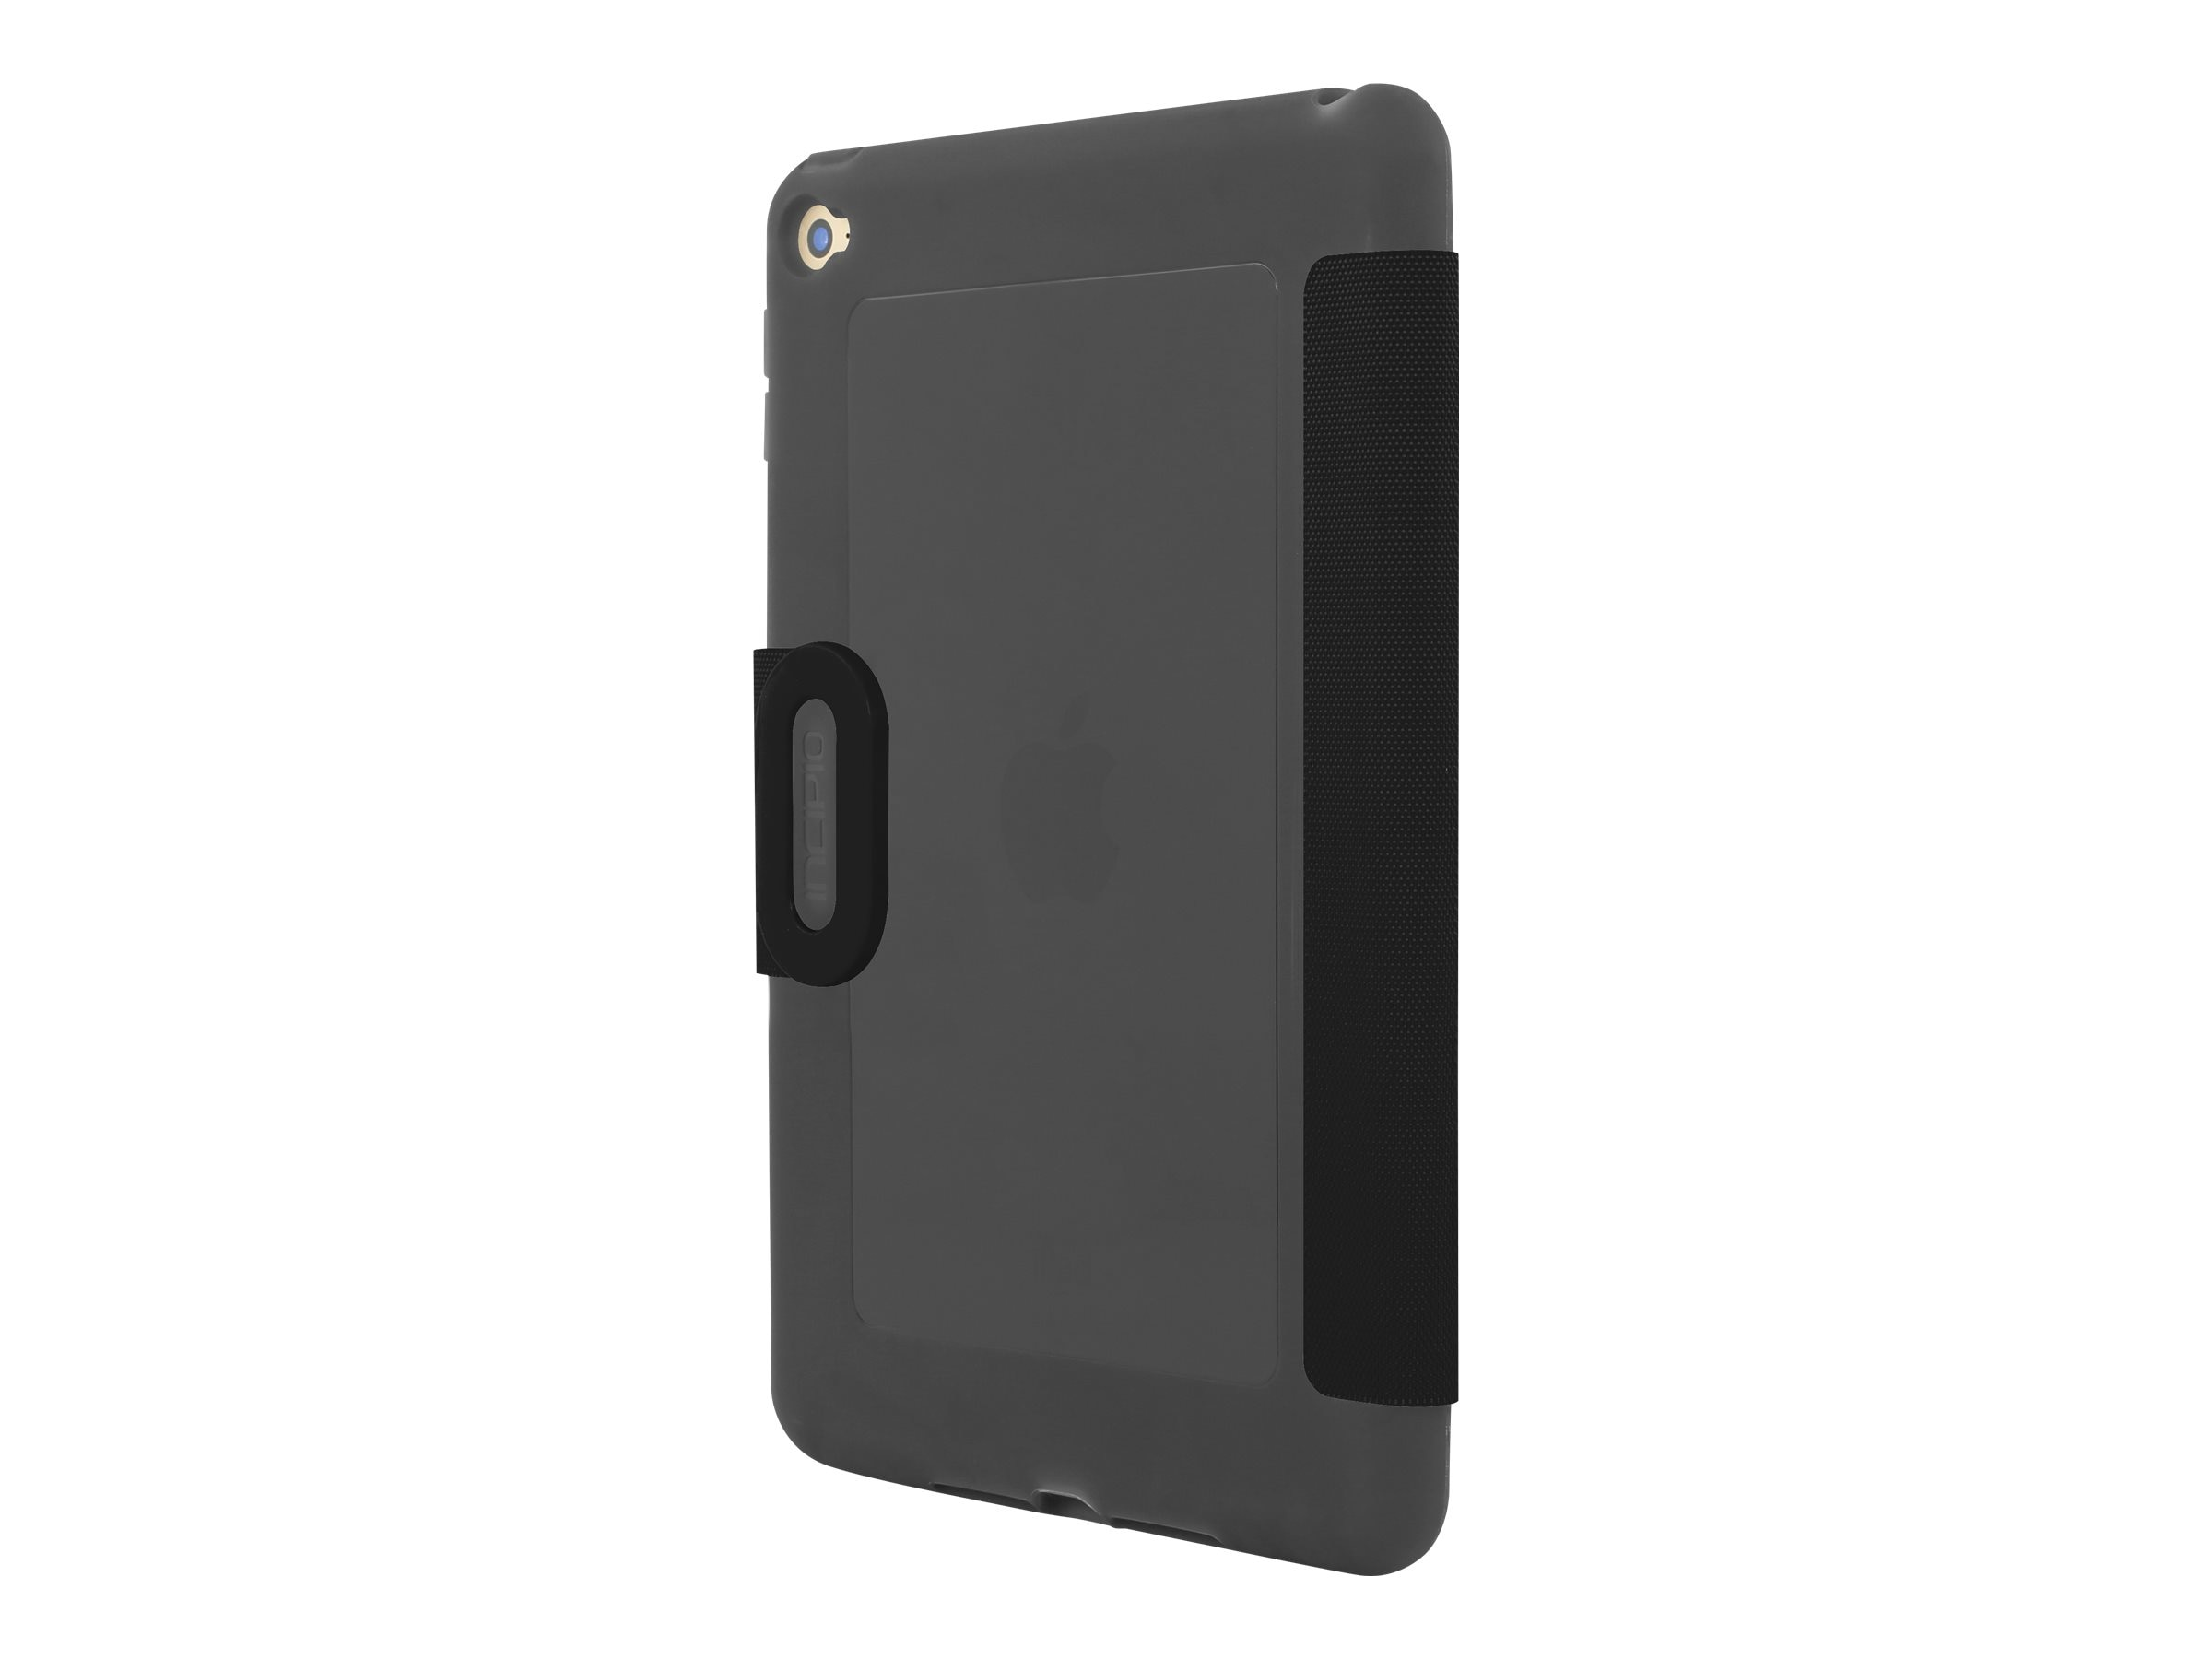 Incipio Clarion Folio for iPad mini 4, Black, IPD-281-BLK